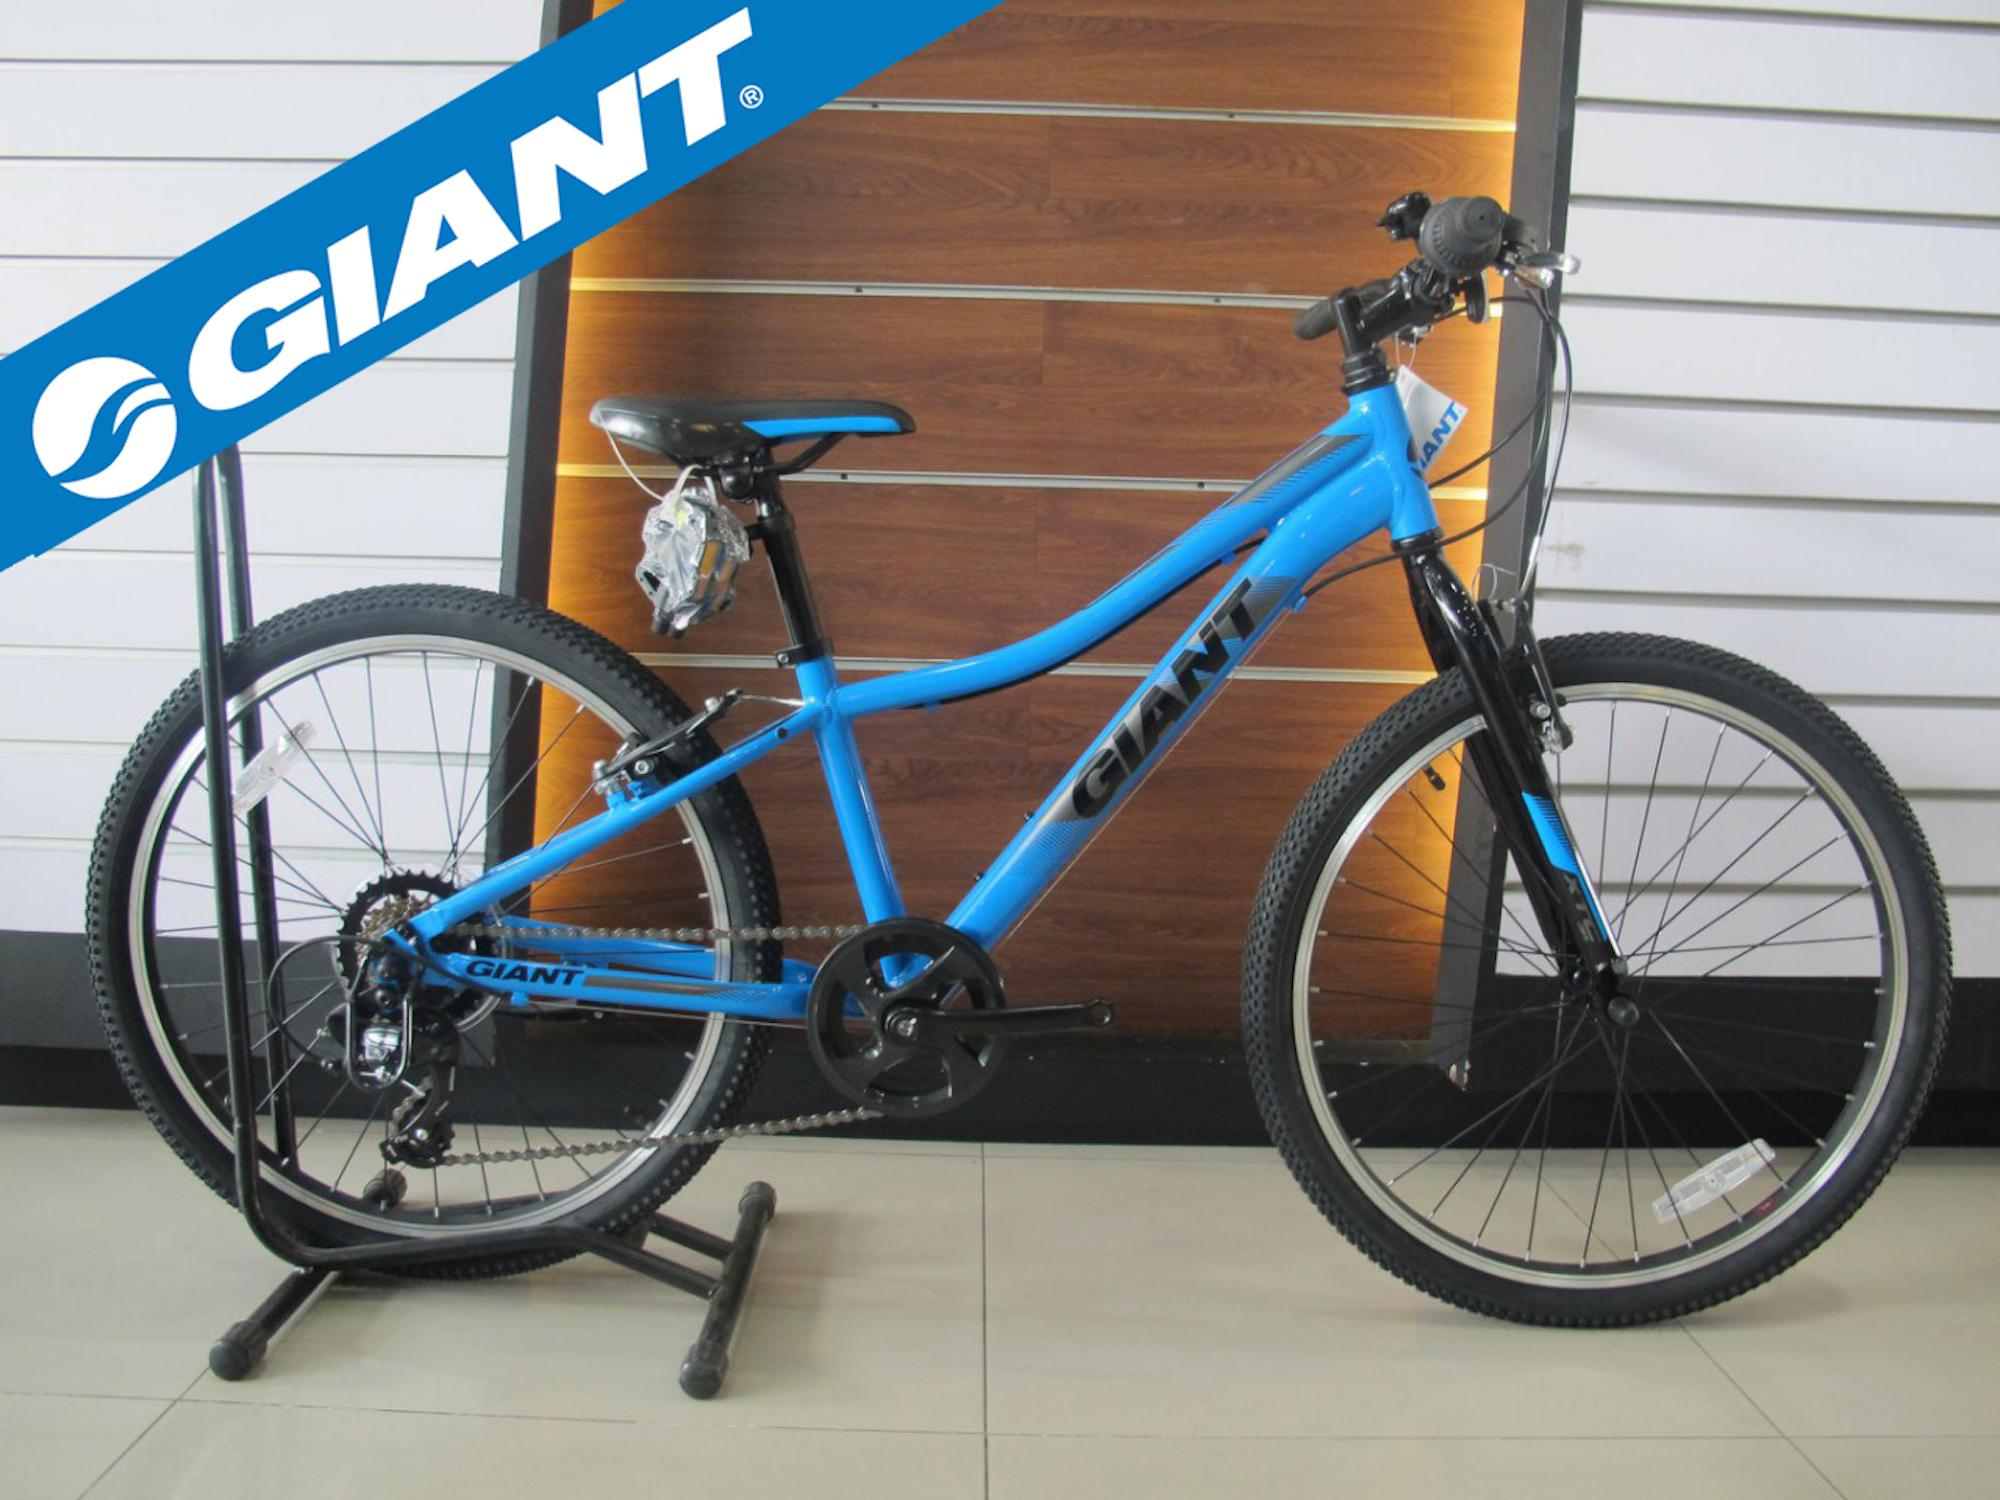 Giant Philippines Mountain Bike For Sale Prices Reviews Frame Xtc Slr Jr 24 Lite 2019 Youth Mtb Road